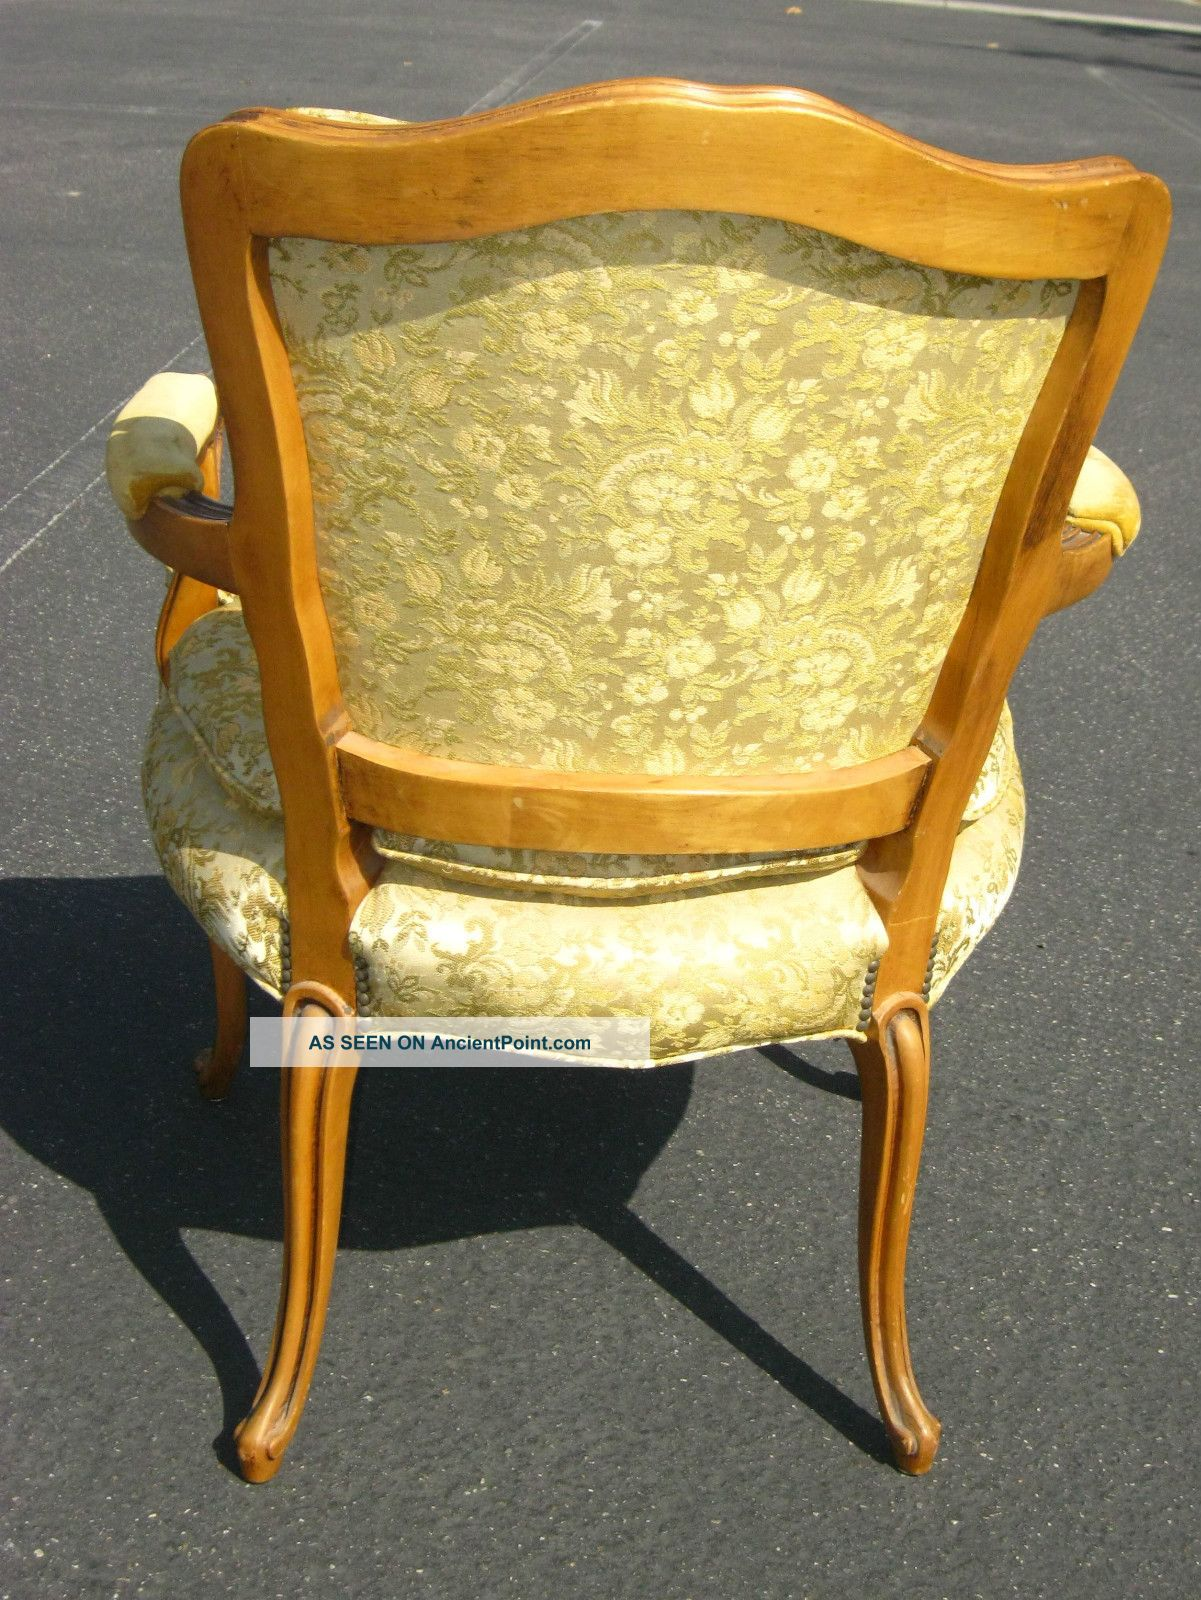 french provincial adele occasional chair ikea potty 1000 43 images about furniture on pinterest art nouveau